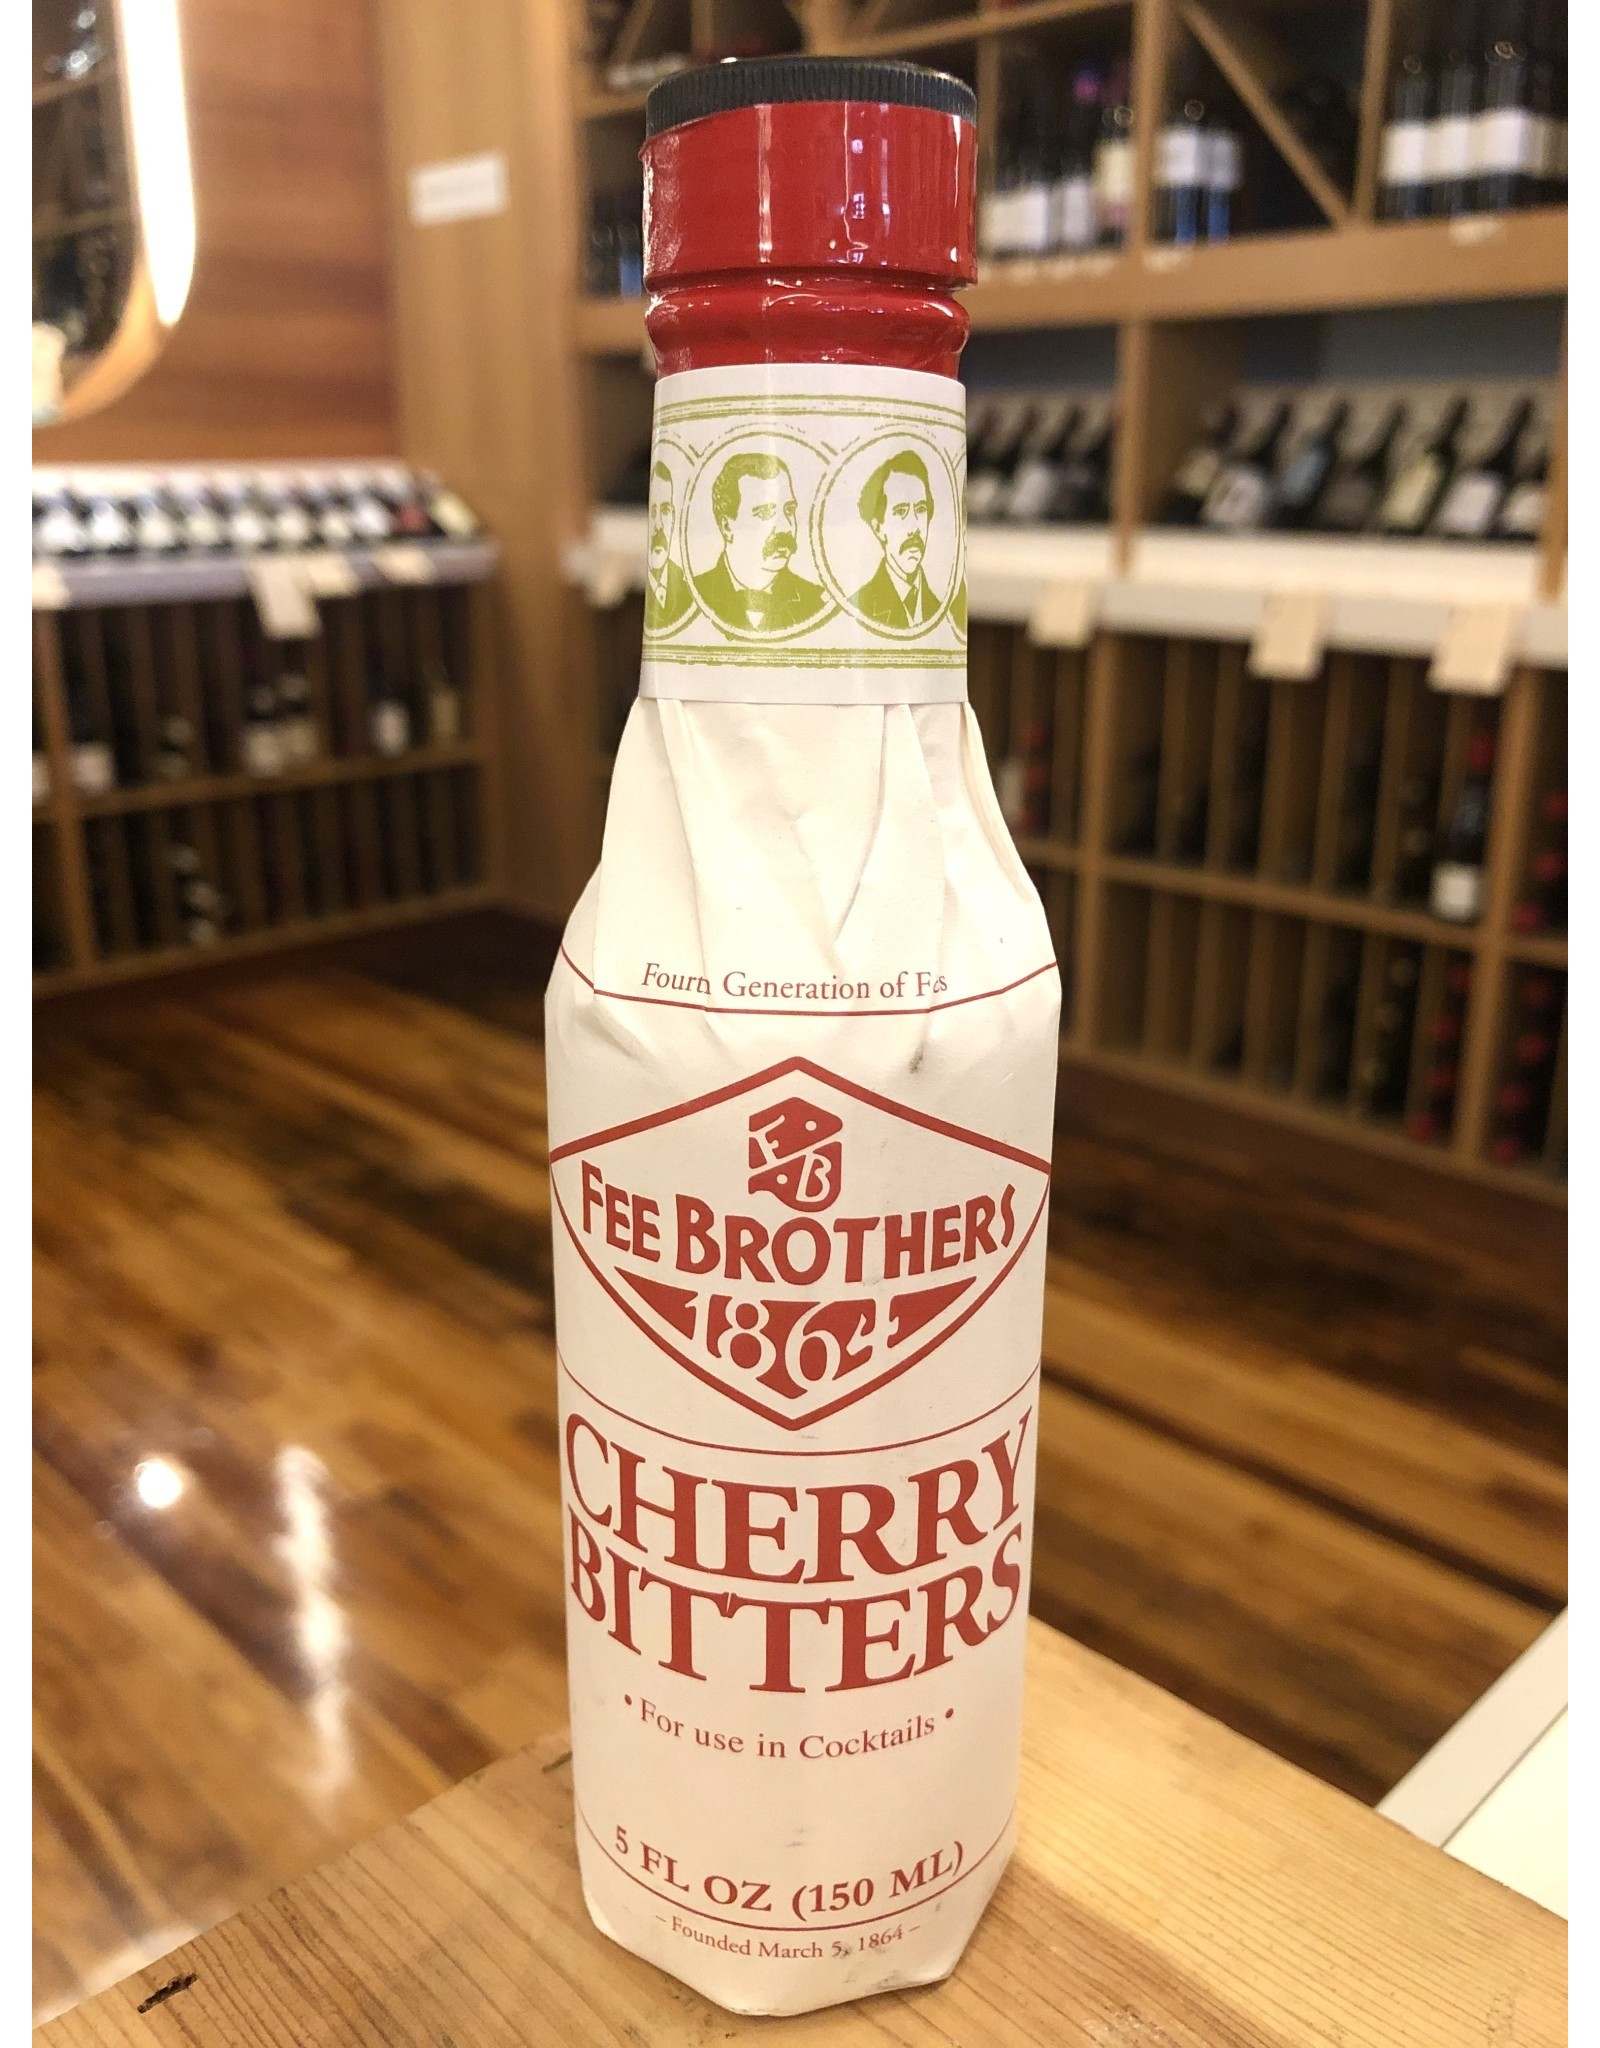 Fee Brothers Cherry Bitters